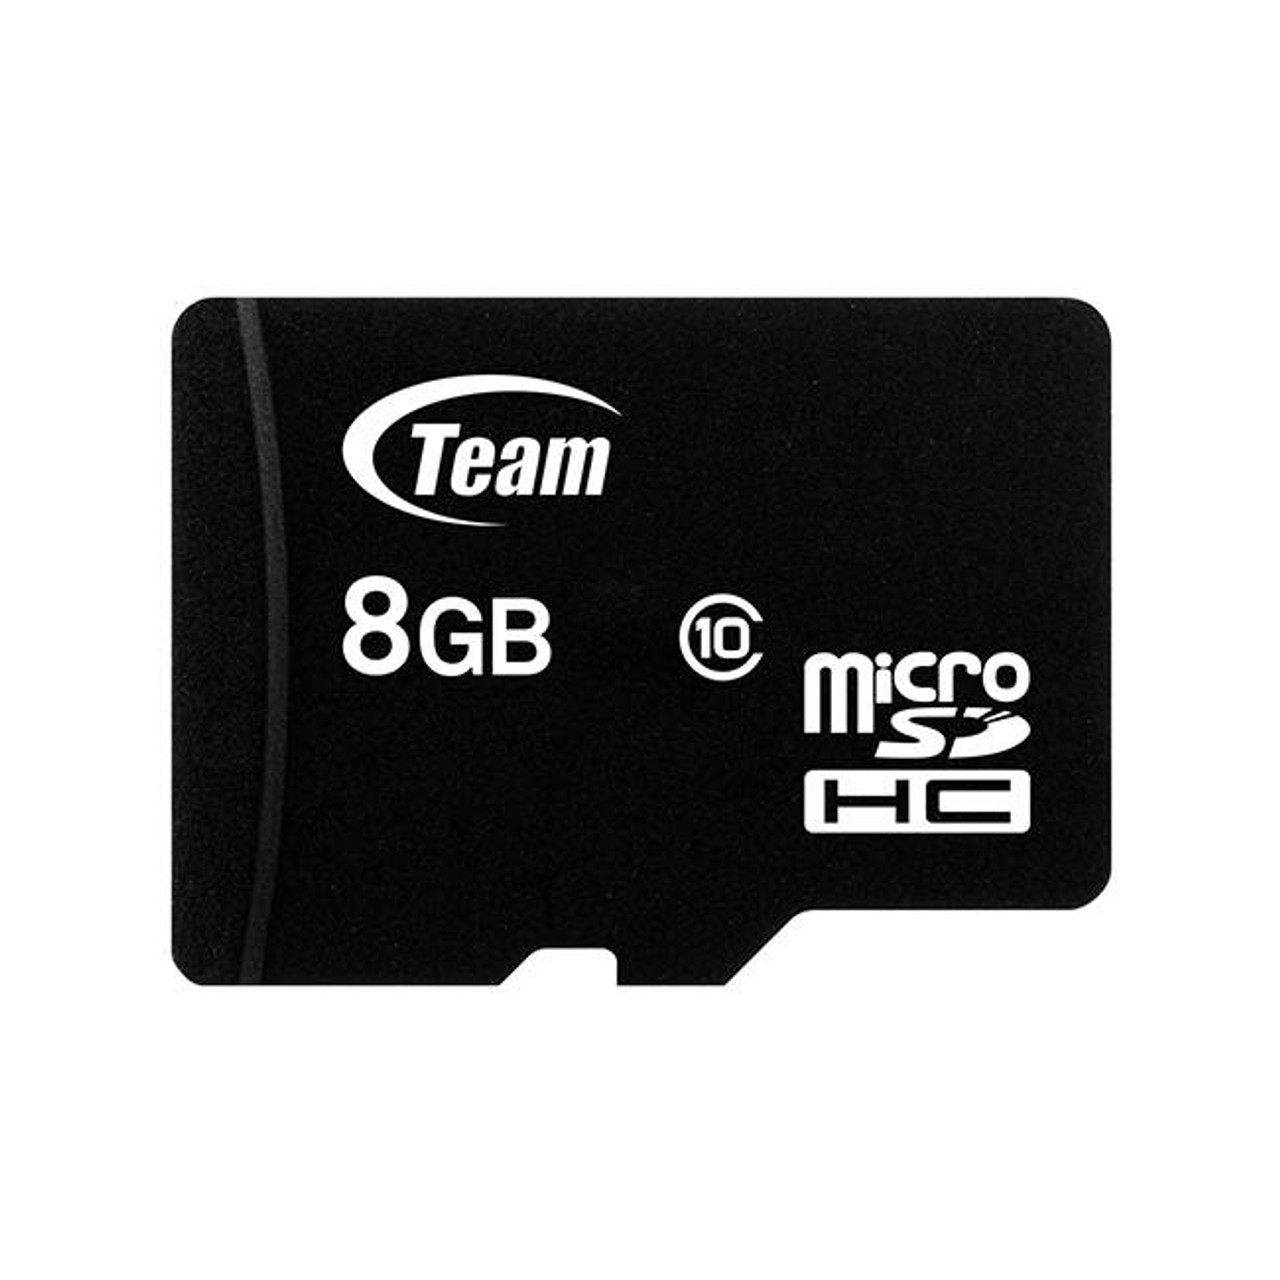 Image for Team SDHC 8GB Class 10 MicroSD Card - TUSDH8GCL1003 CX Computer Superstore